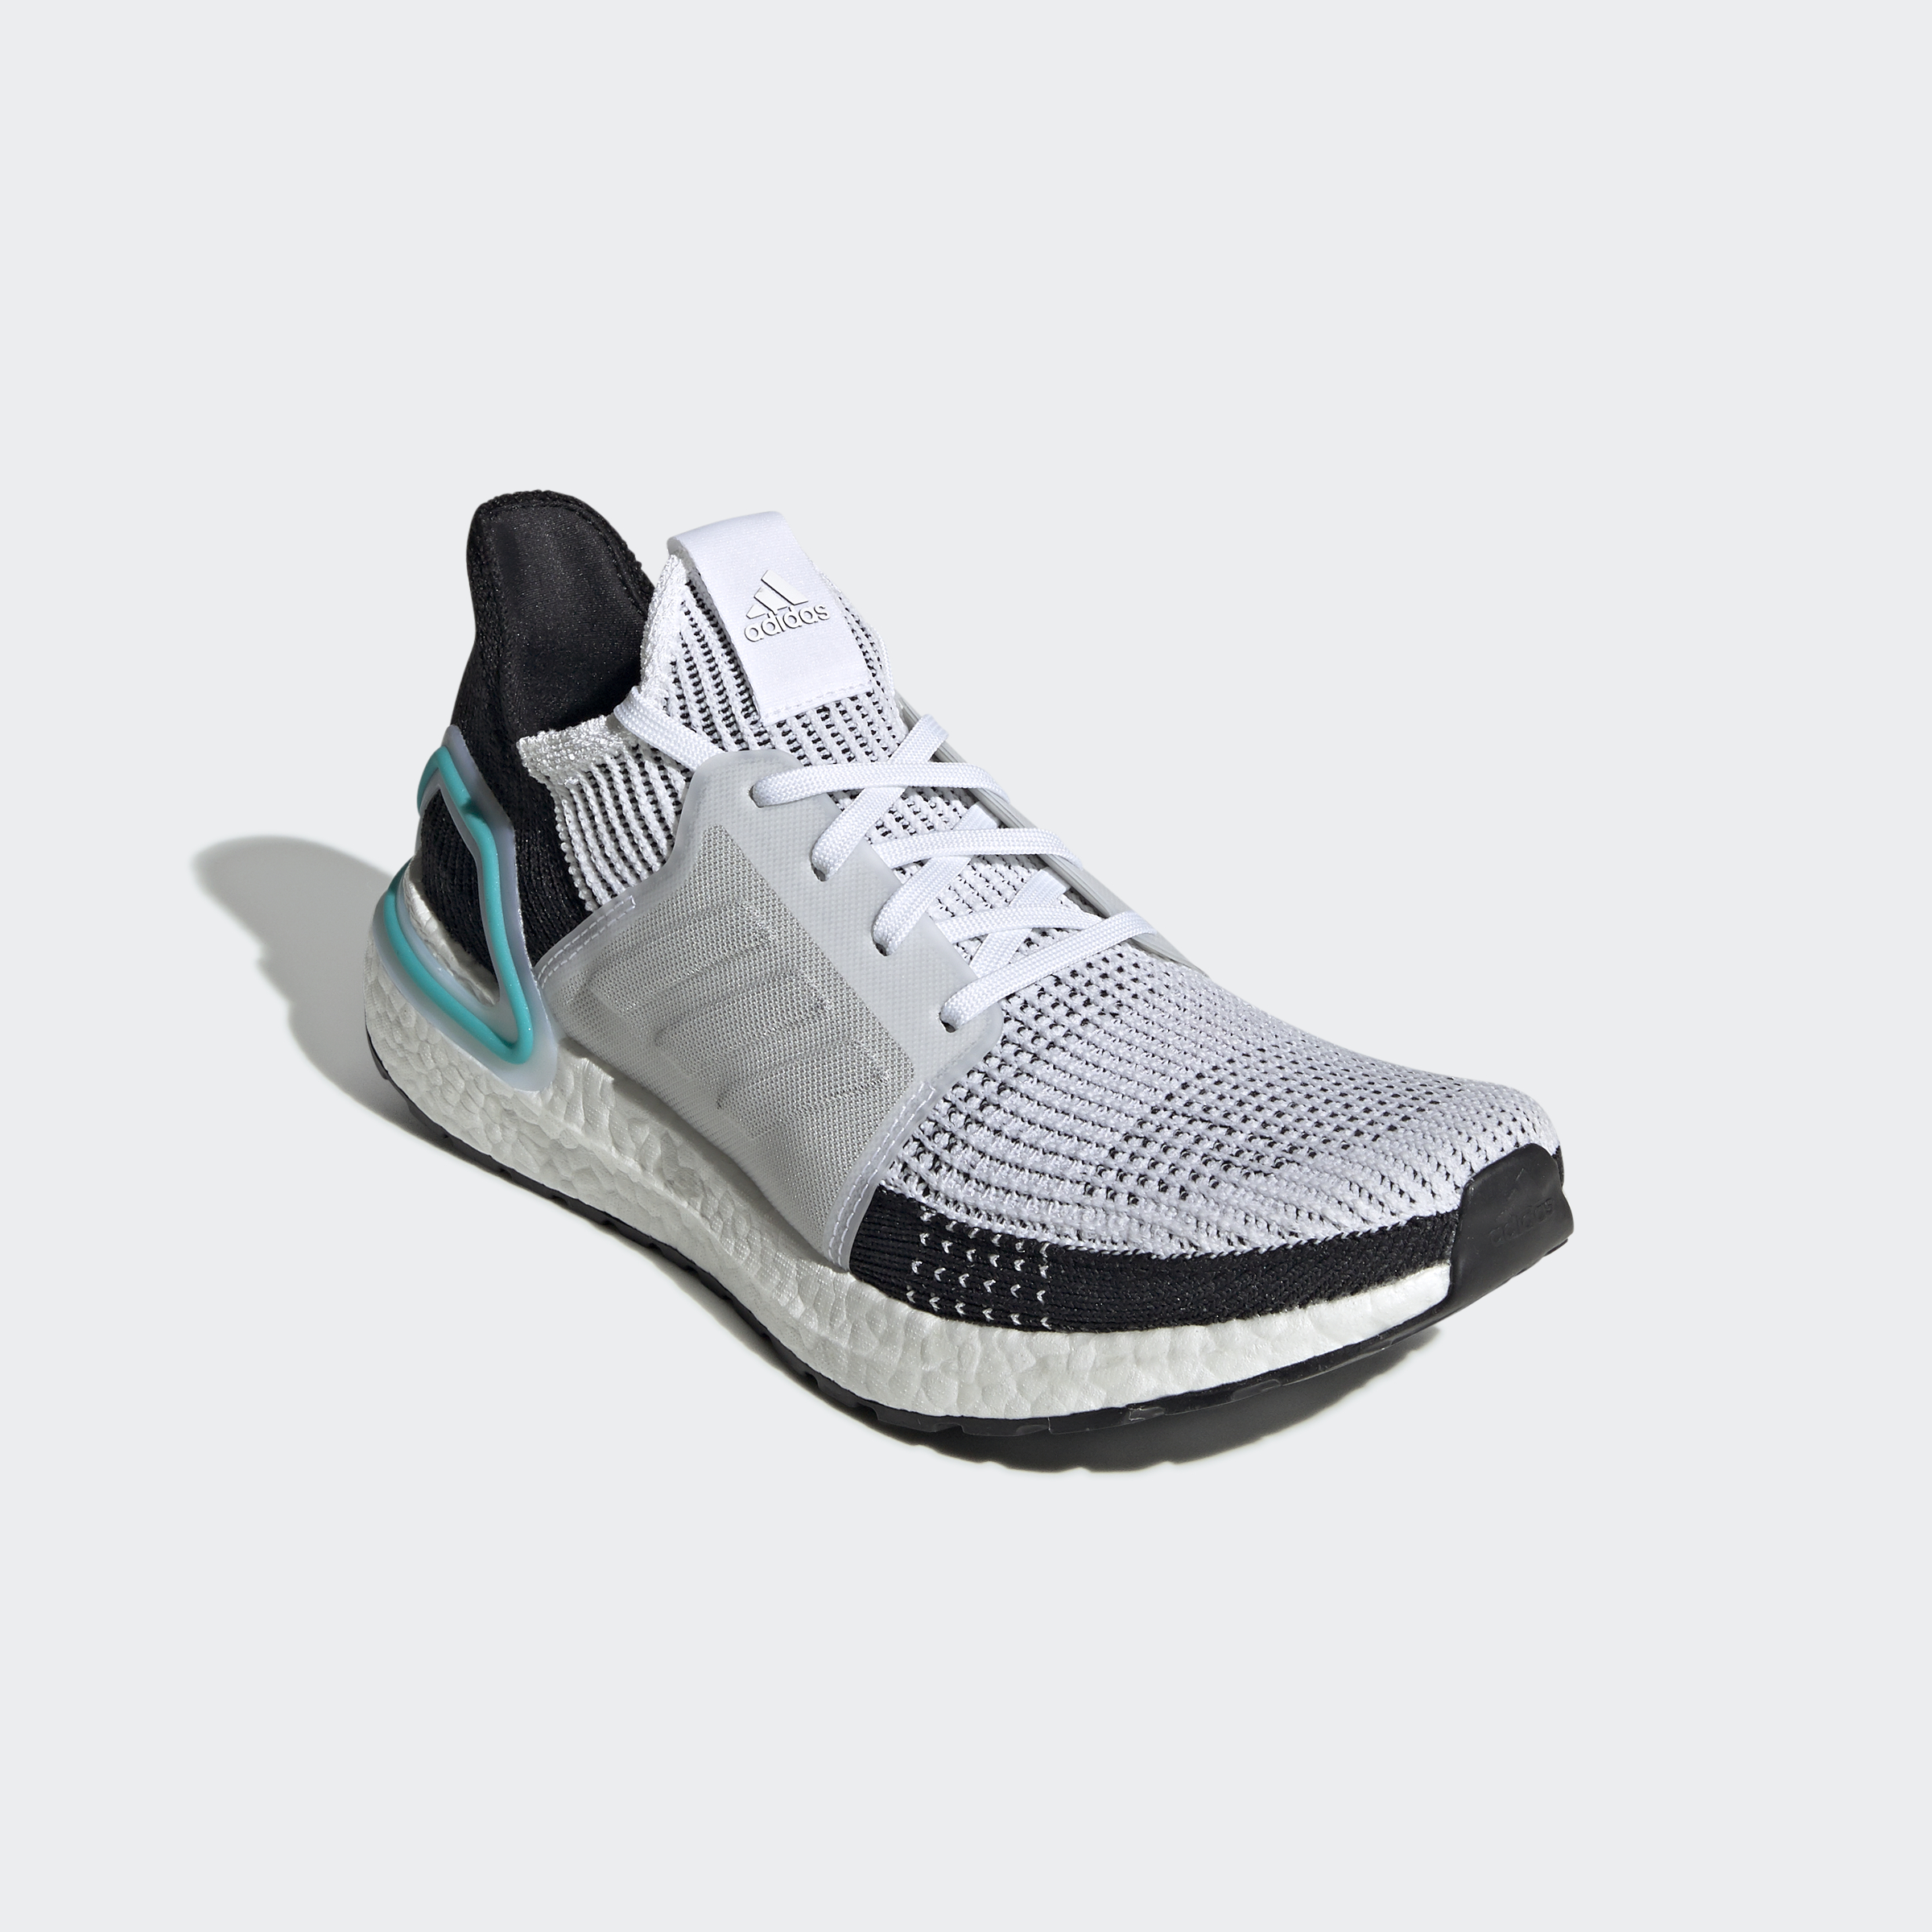 adidas-Ultraboost-19-Shoes-Athletic-amp-Sneakers thumbnail 138